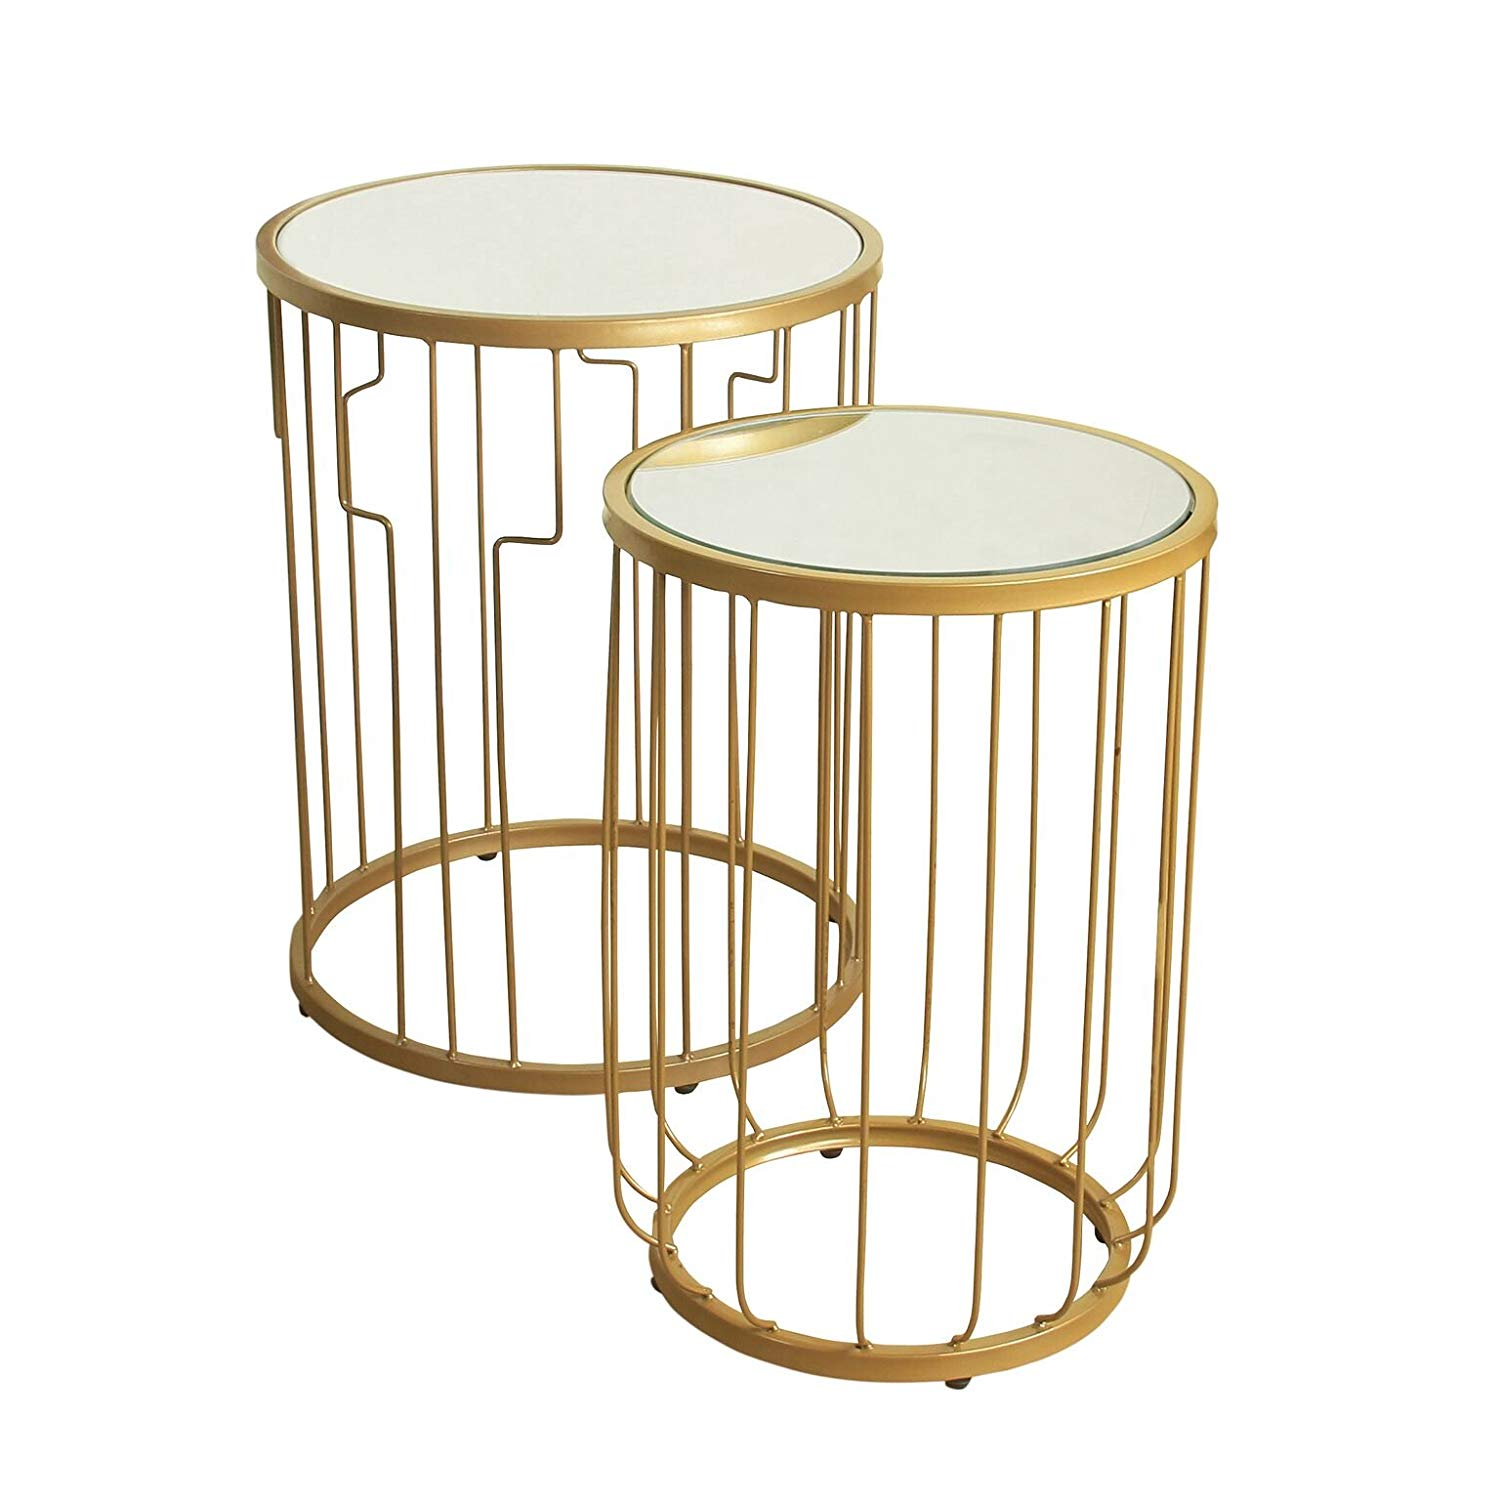 homepop metal accent nesting tables with glass gold table set top kitchen dining tall sofa square coffee small lamps for bedroom chair design leaf round occasional white outdoor